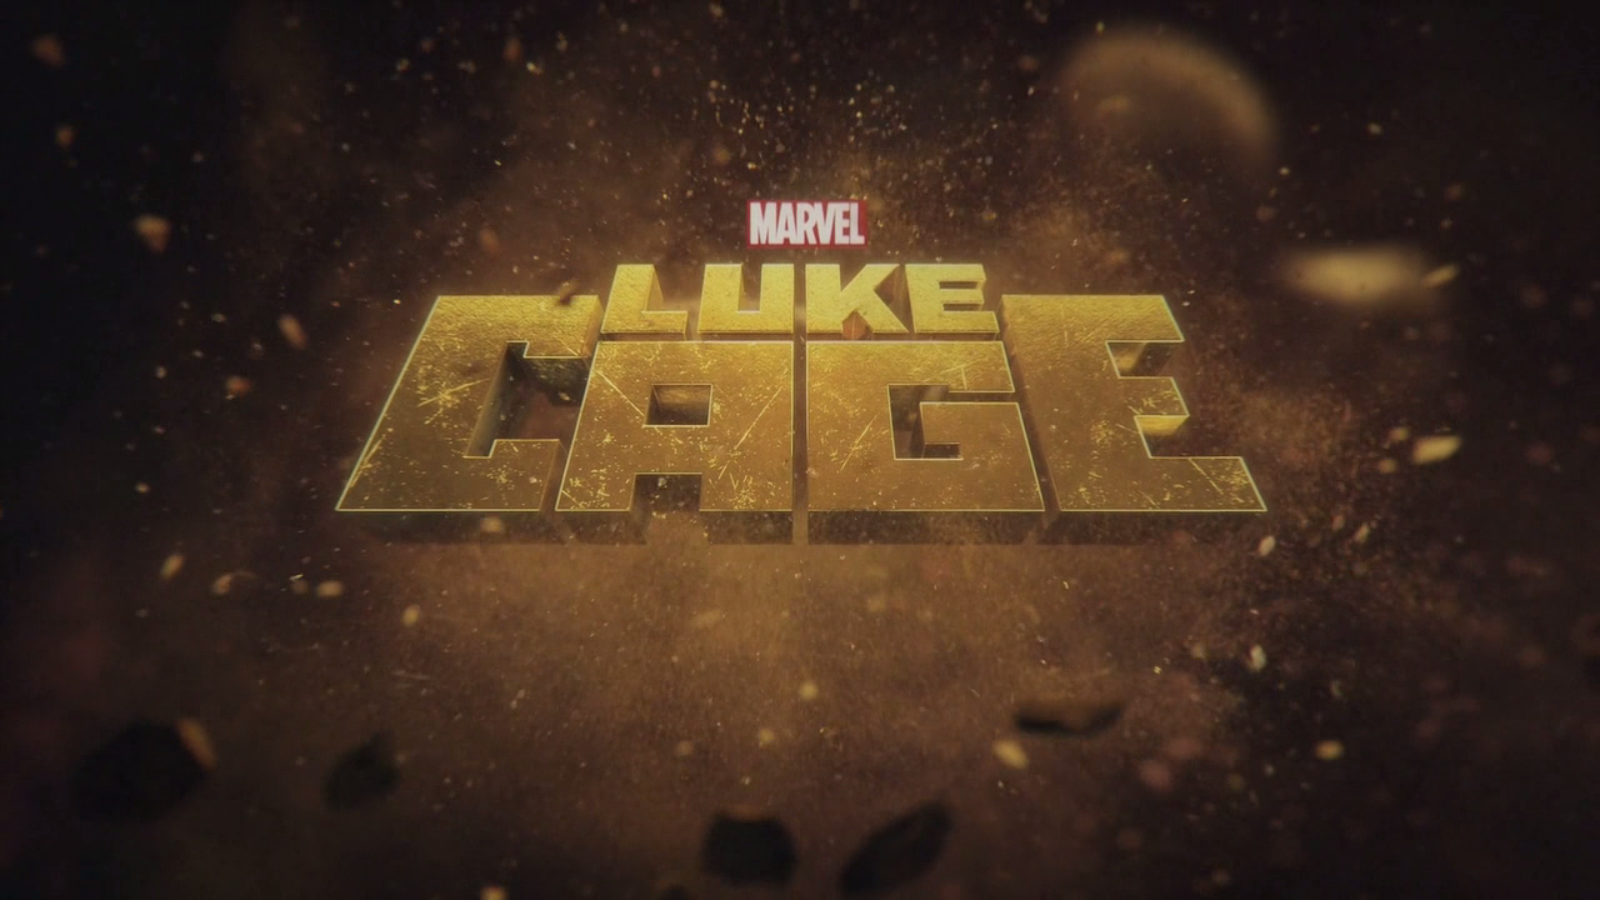 Download Wallpaper Marvel Luke Cage - latest?cb\u003d20161001112046  Photograph_257659.png/revision/latest?cb\u003d20161001112046